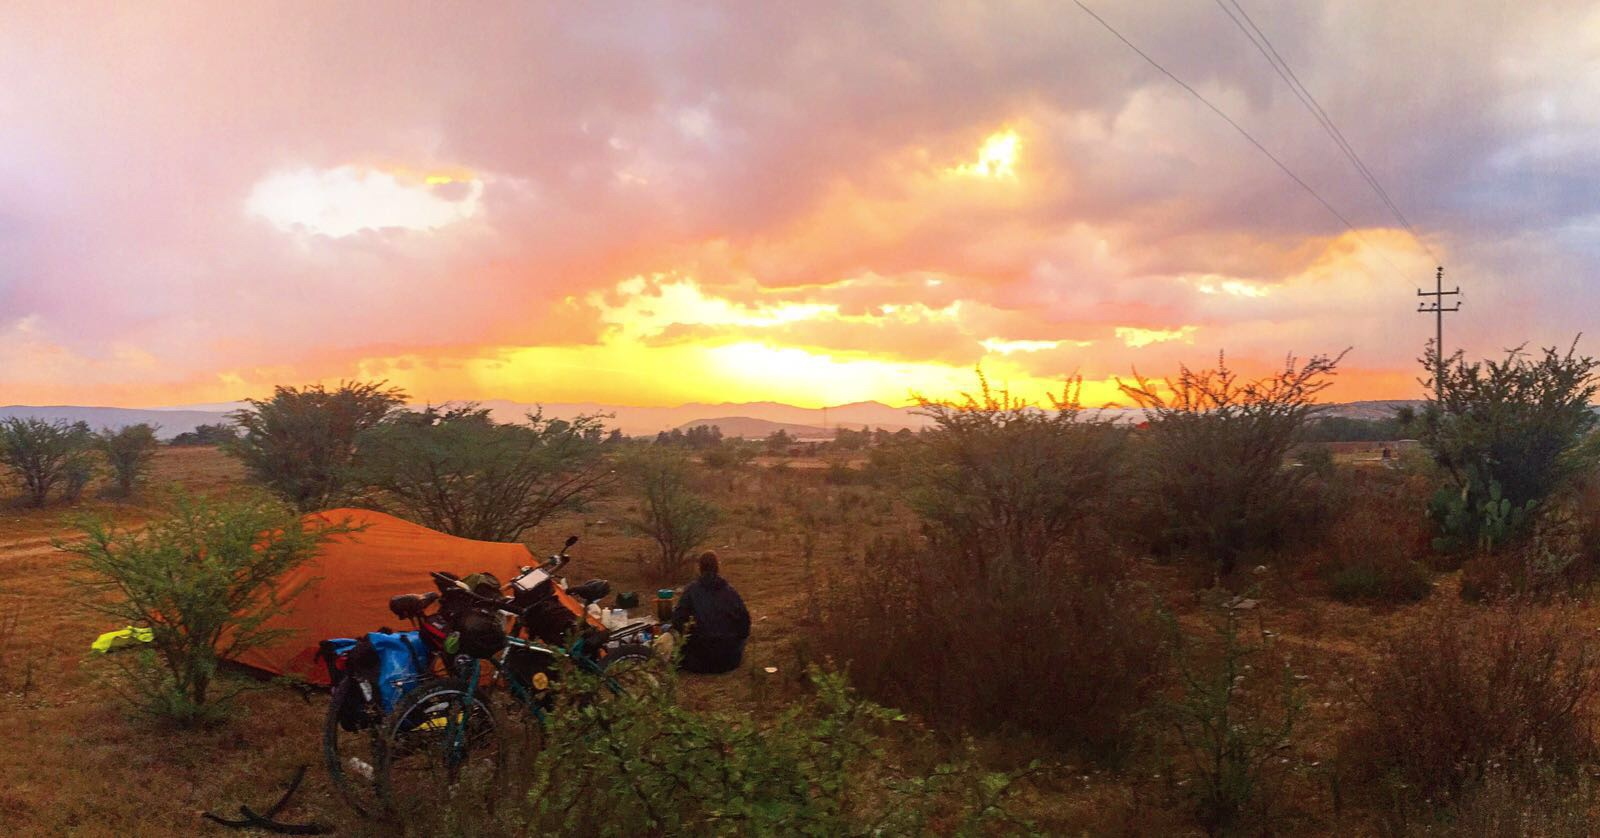 Incredible wild camping in the mountains of Northern Oaxaca